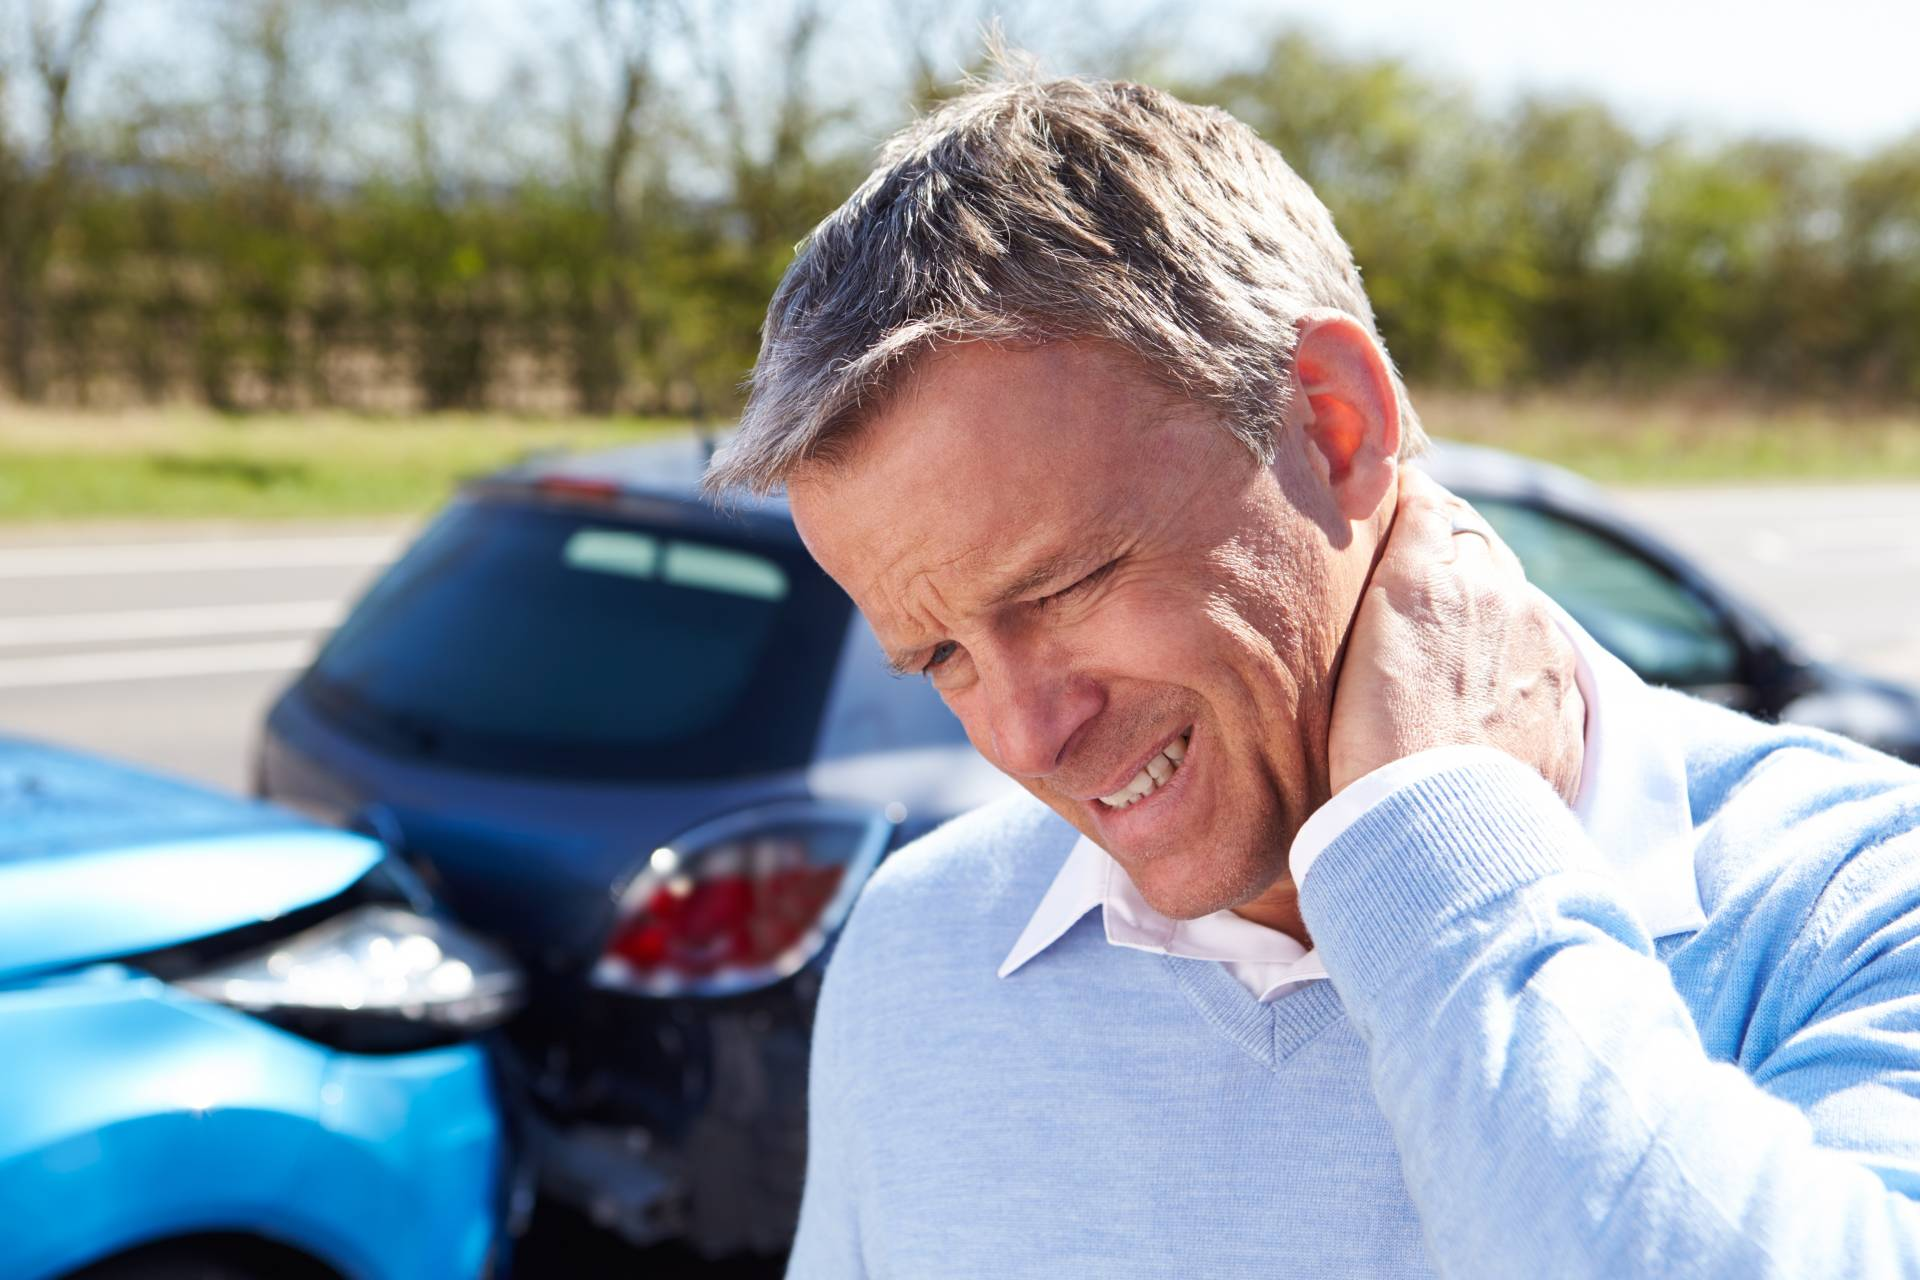 Man holds neck after an auto accident injury in Jefferson, GA